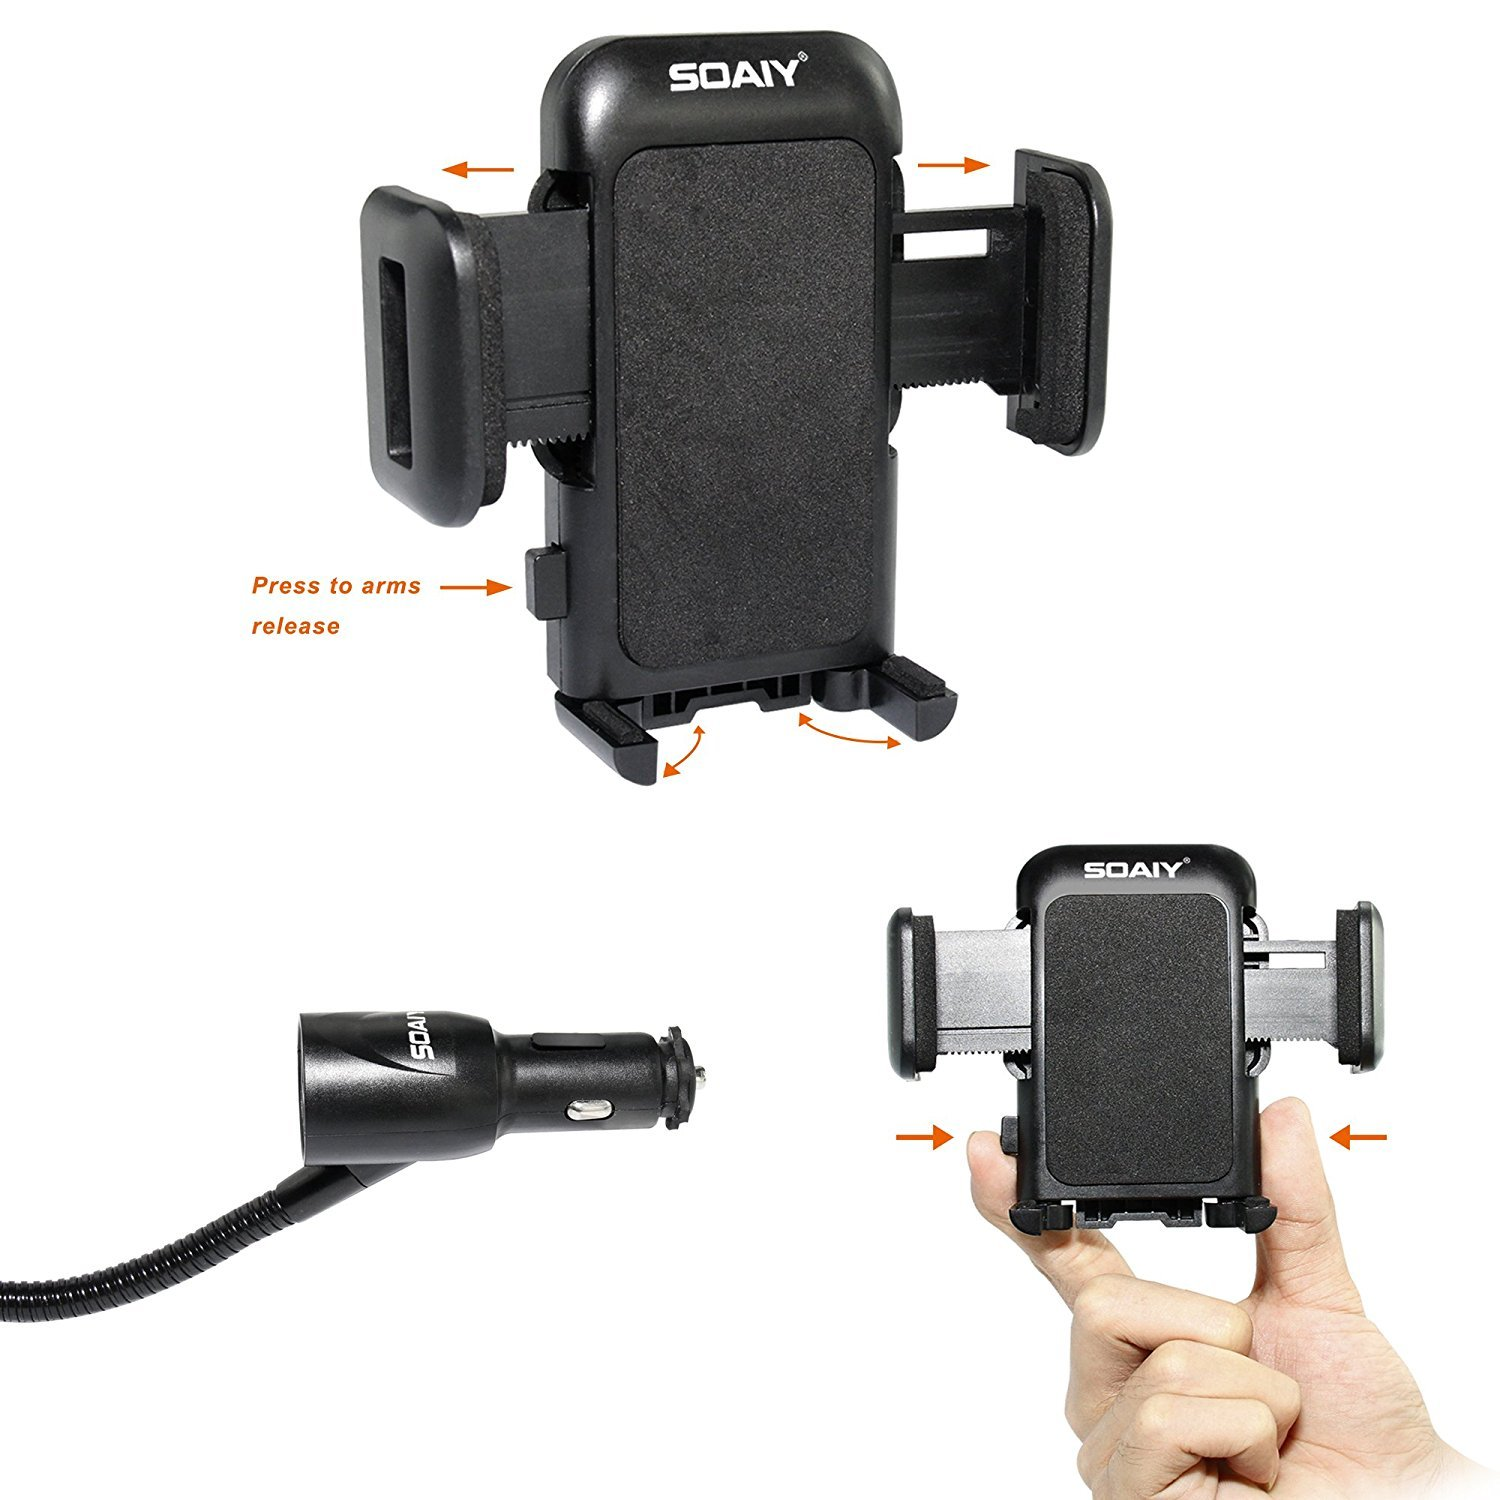 3-in-1 Cigarette Lighter Car Mount + Voltage Detector, SOAIY Car Mount Charger Holder Cradle w/Dual USB 3.1A Charger, Display Voltage Current Compatible with iPhone8 X 7 6s 6 5s Samsung S8 S7 S6 S5 by SOAIY (Image #5)